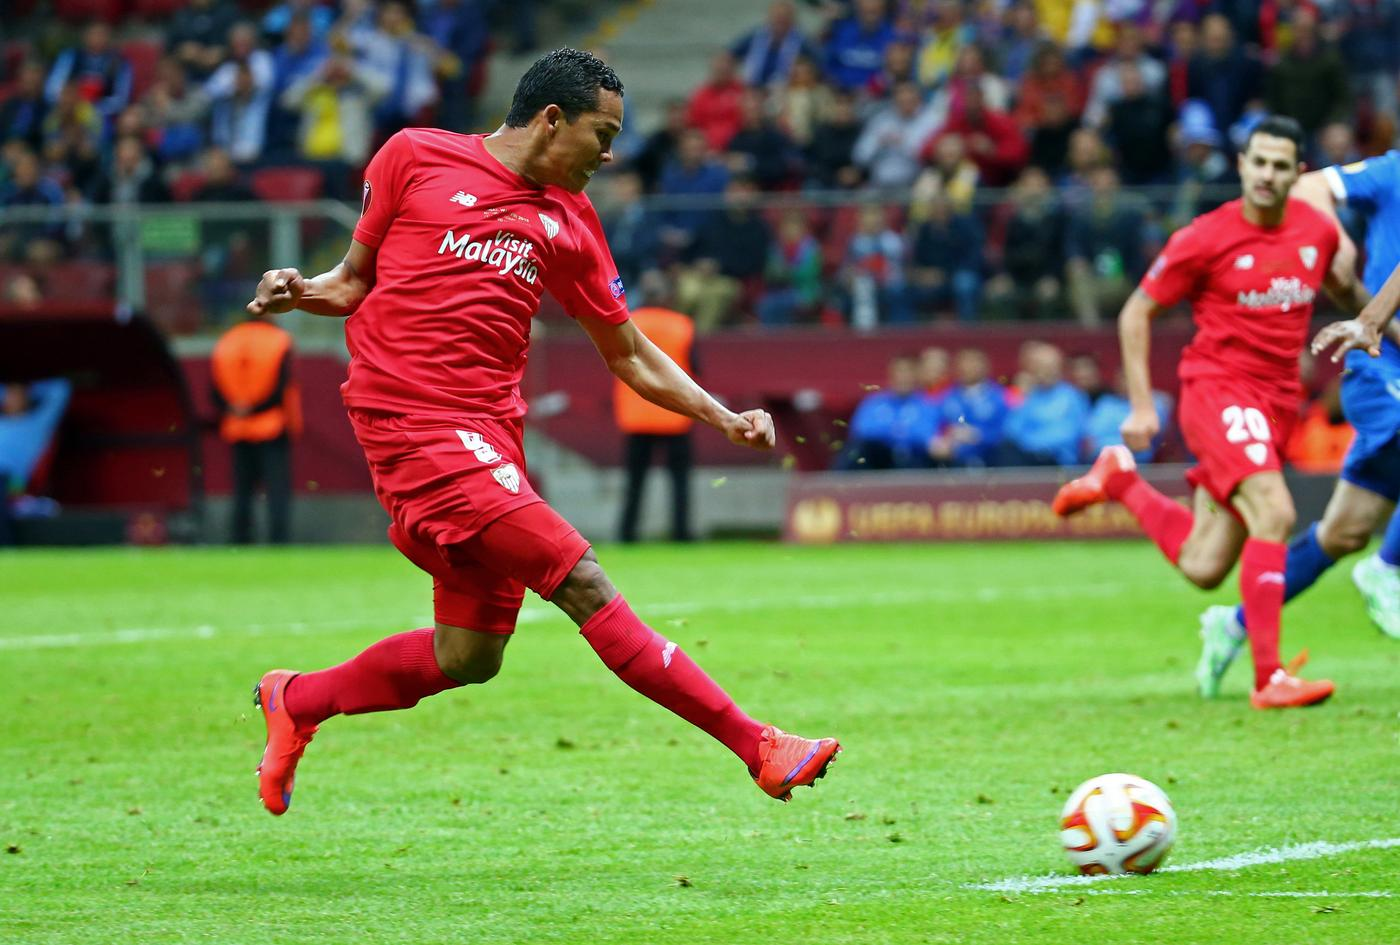 Liverpool 'set to launch £21.5m transfer bid for Carlos Bacca'